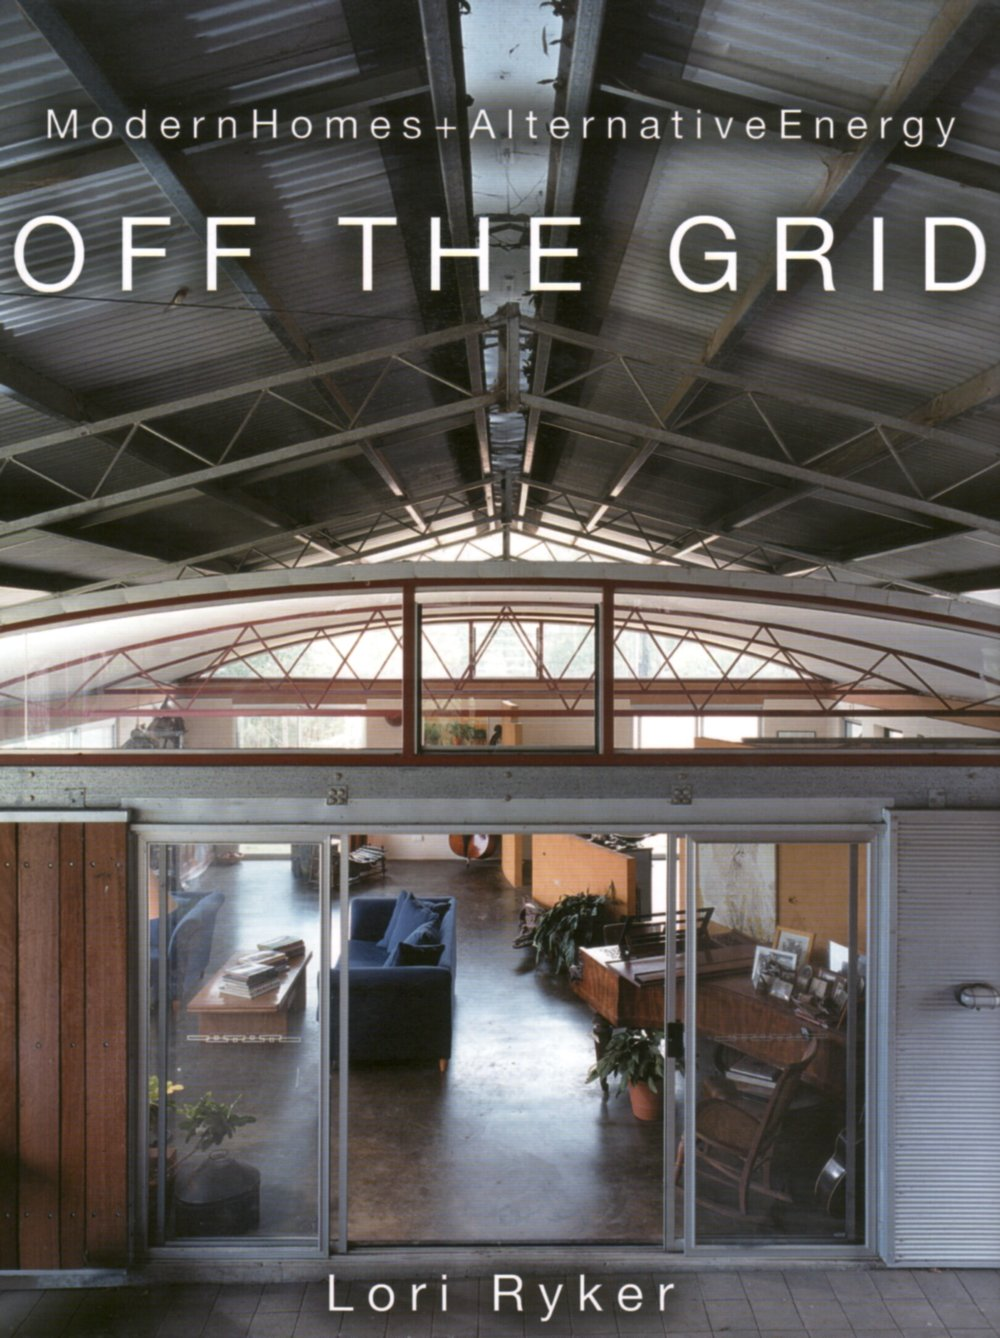 'Off the Grid' : Lori Ryker, Gibbs Smith, USA, 2005